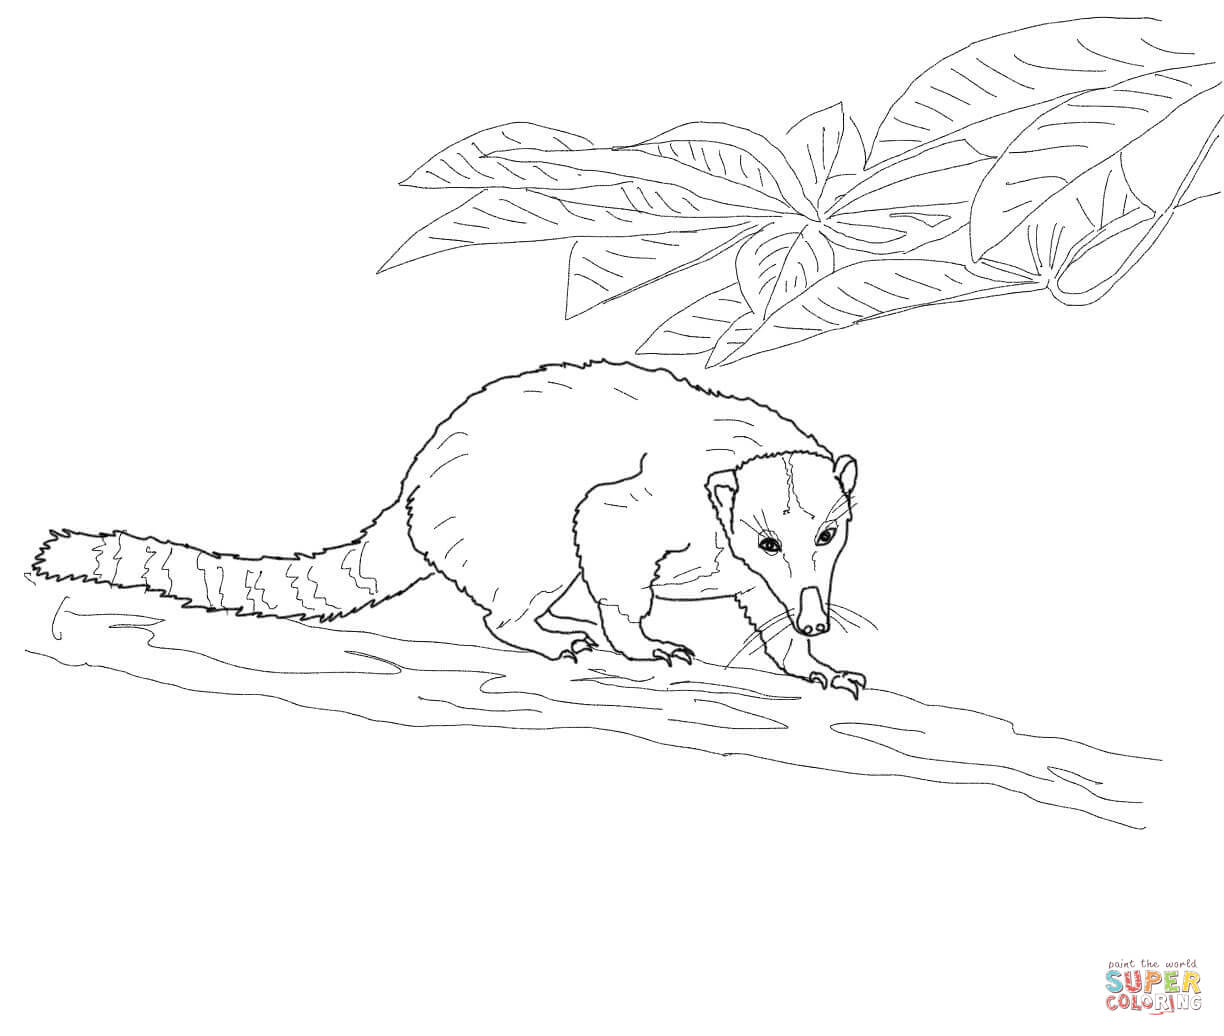 Coati coloring #14, Download drawings